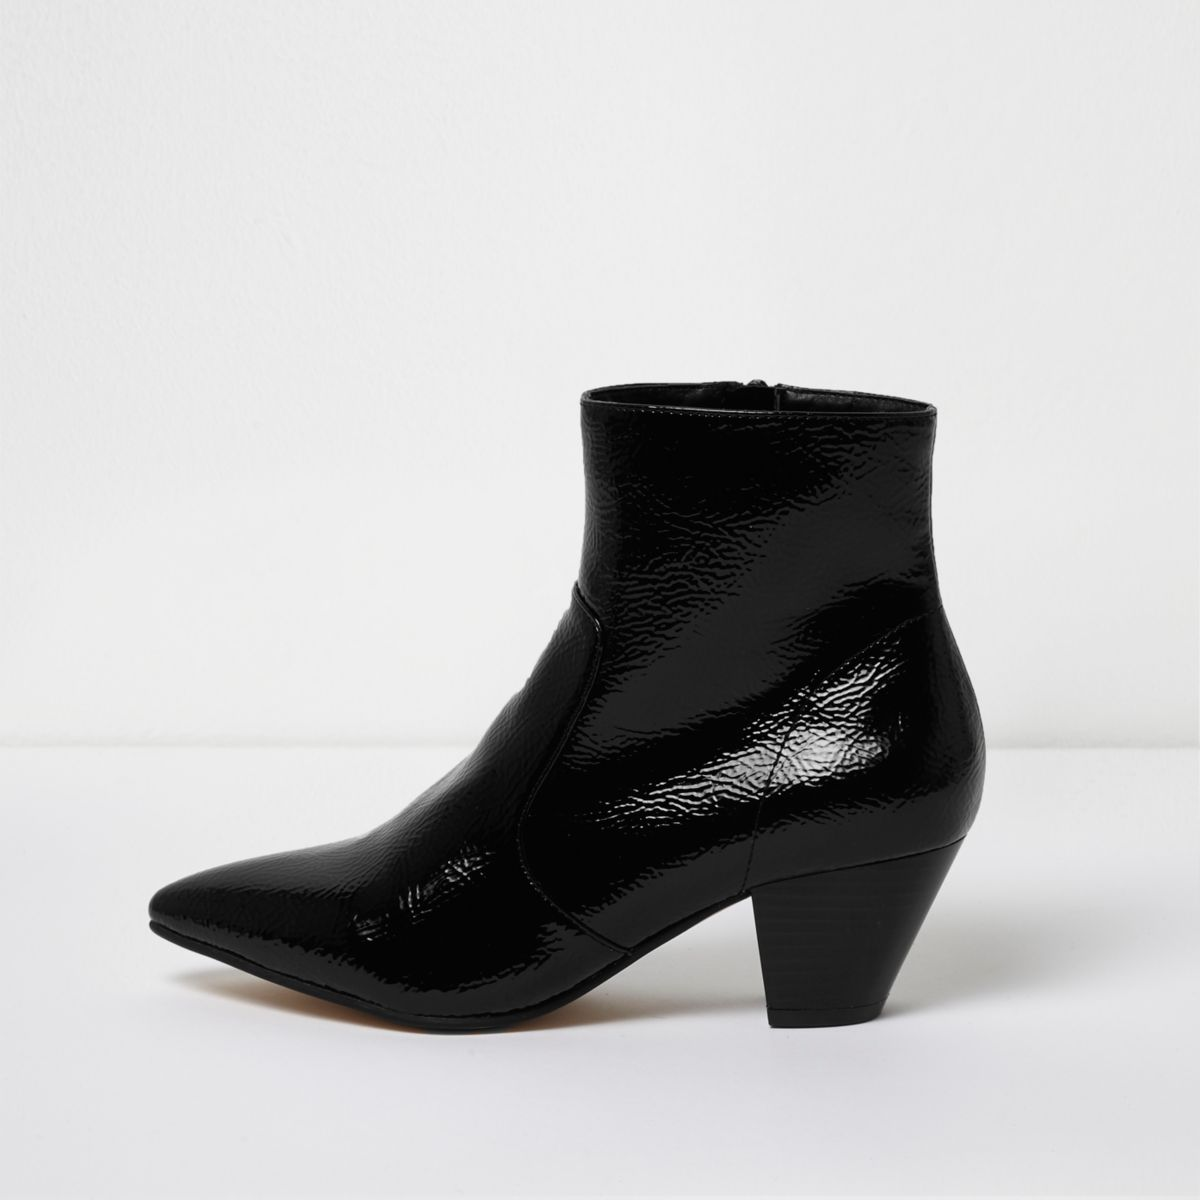 Black pointed toe patent western heel boots